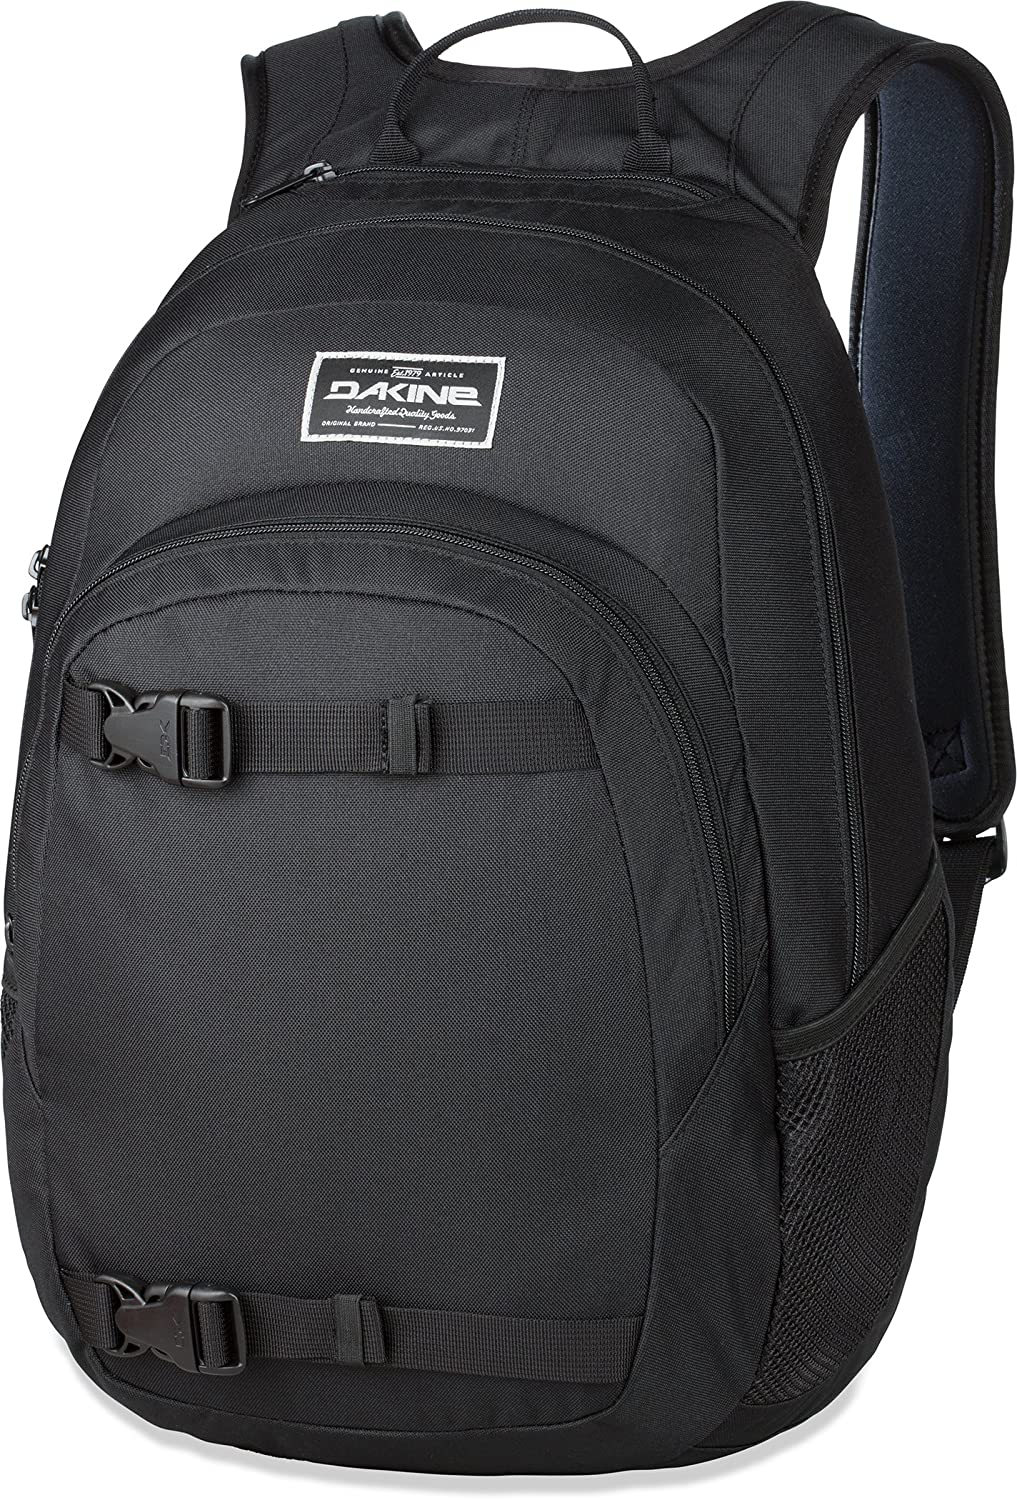 Dakine Point Wet/Dry Backpack, 29 L/One Size, Black 08140035